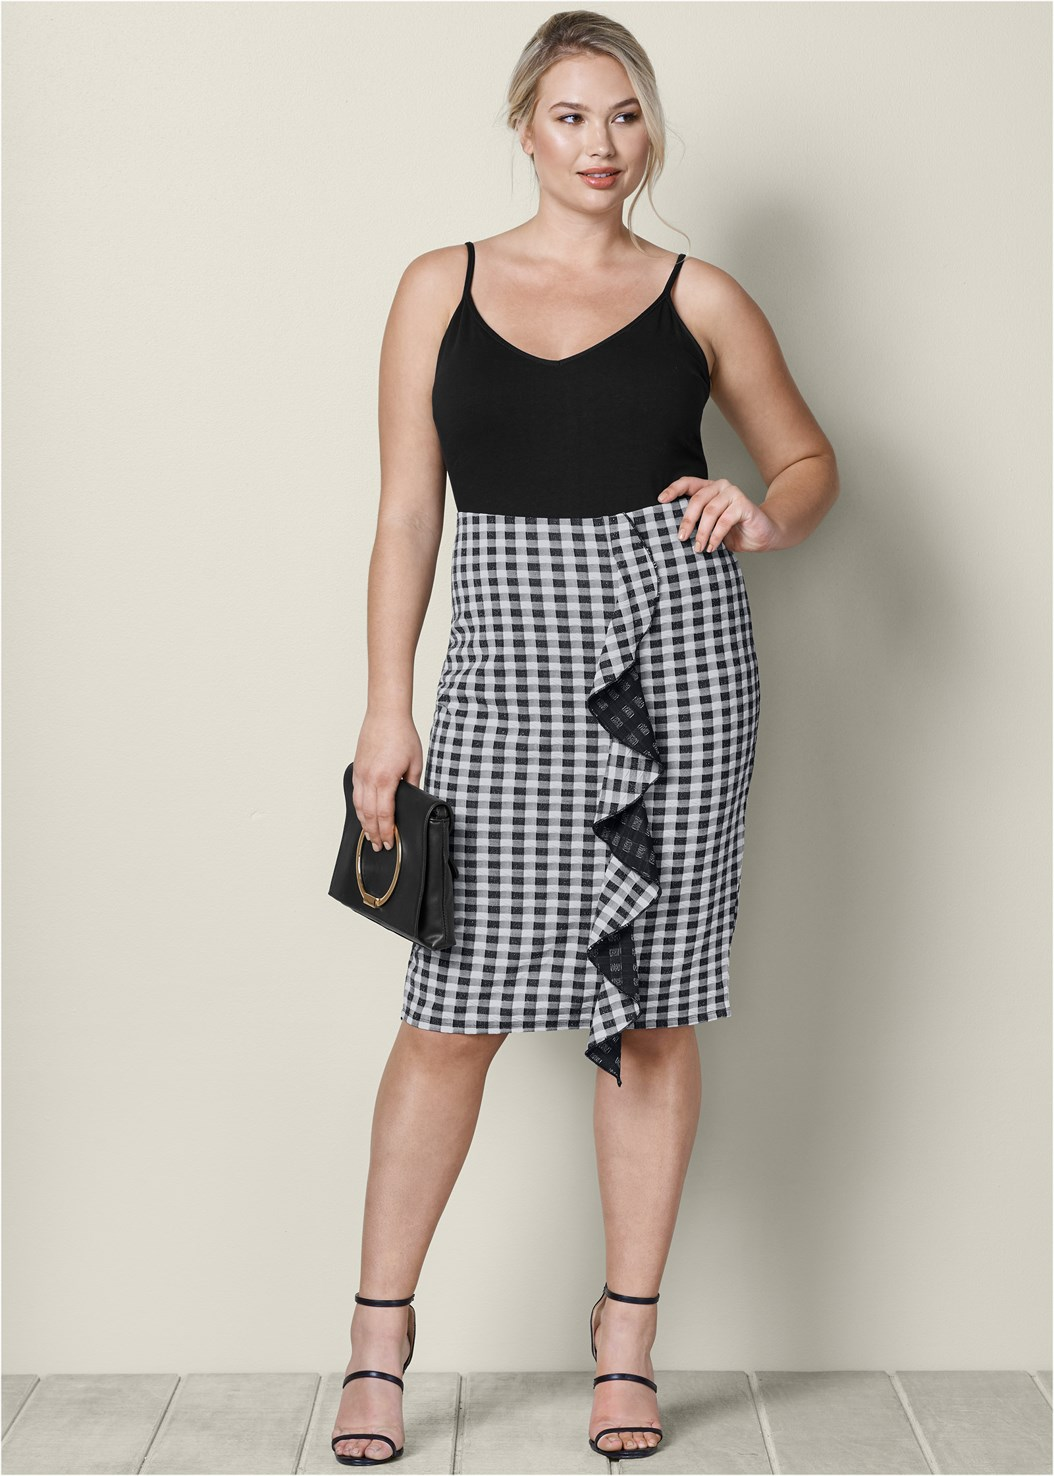 Gingham Ruffle Midi Skirt,High Heel Strappy Sandals